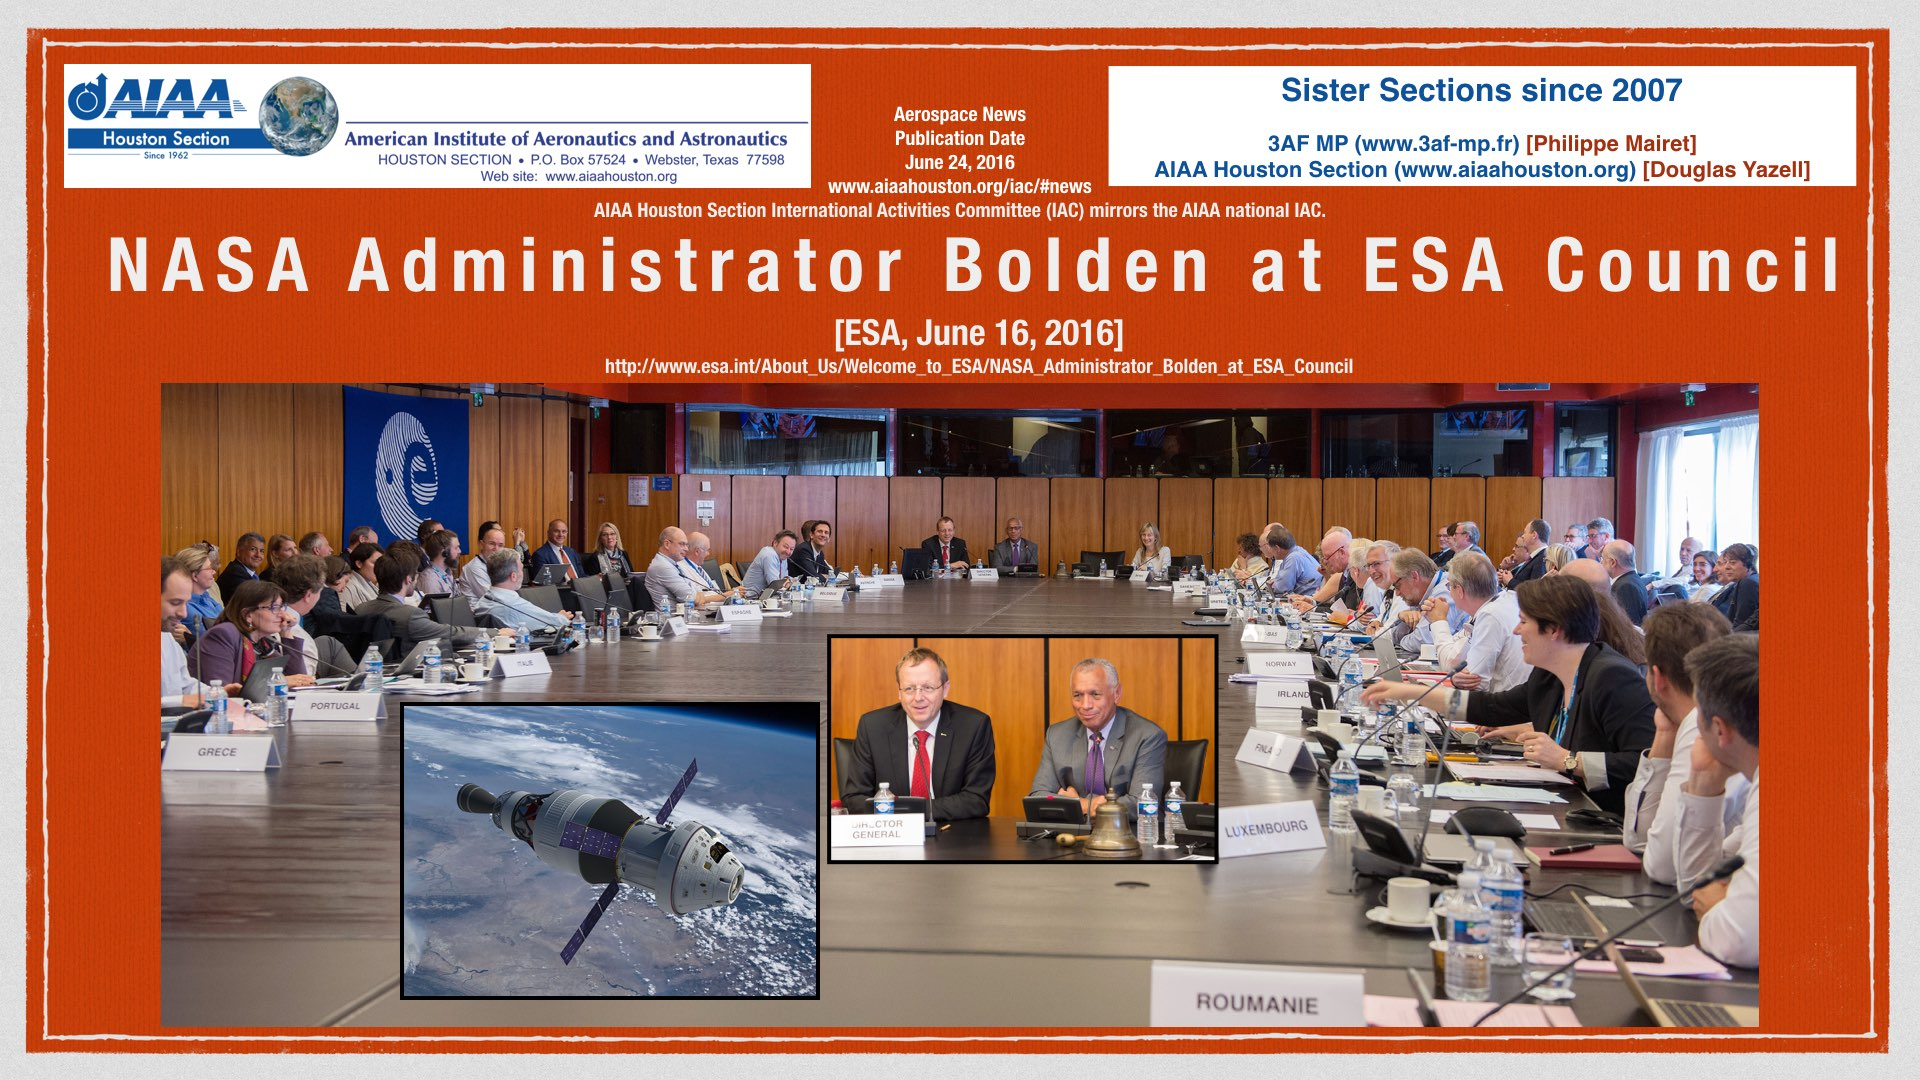 Above: NASA Administrator Bolden at ESA Council. (Click to zoom.)